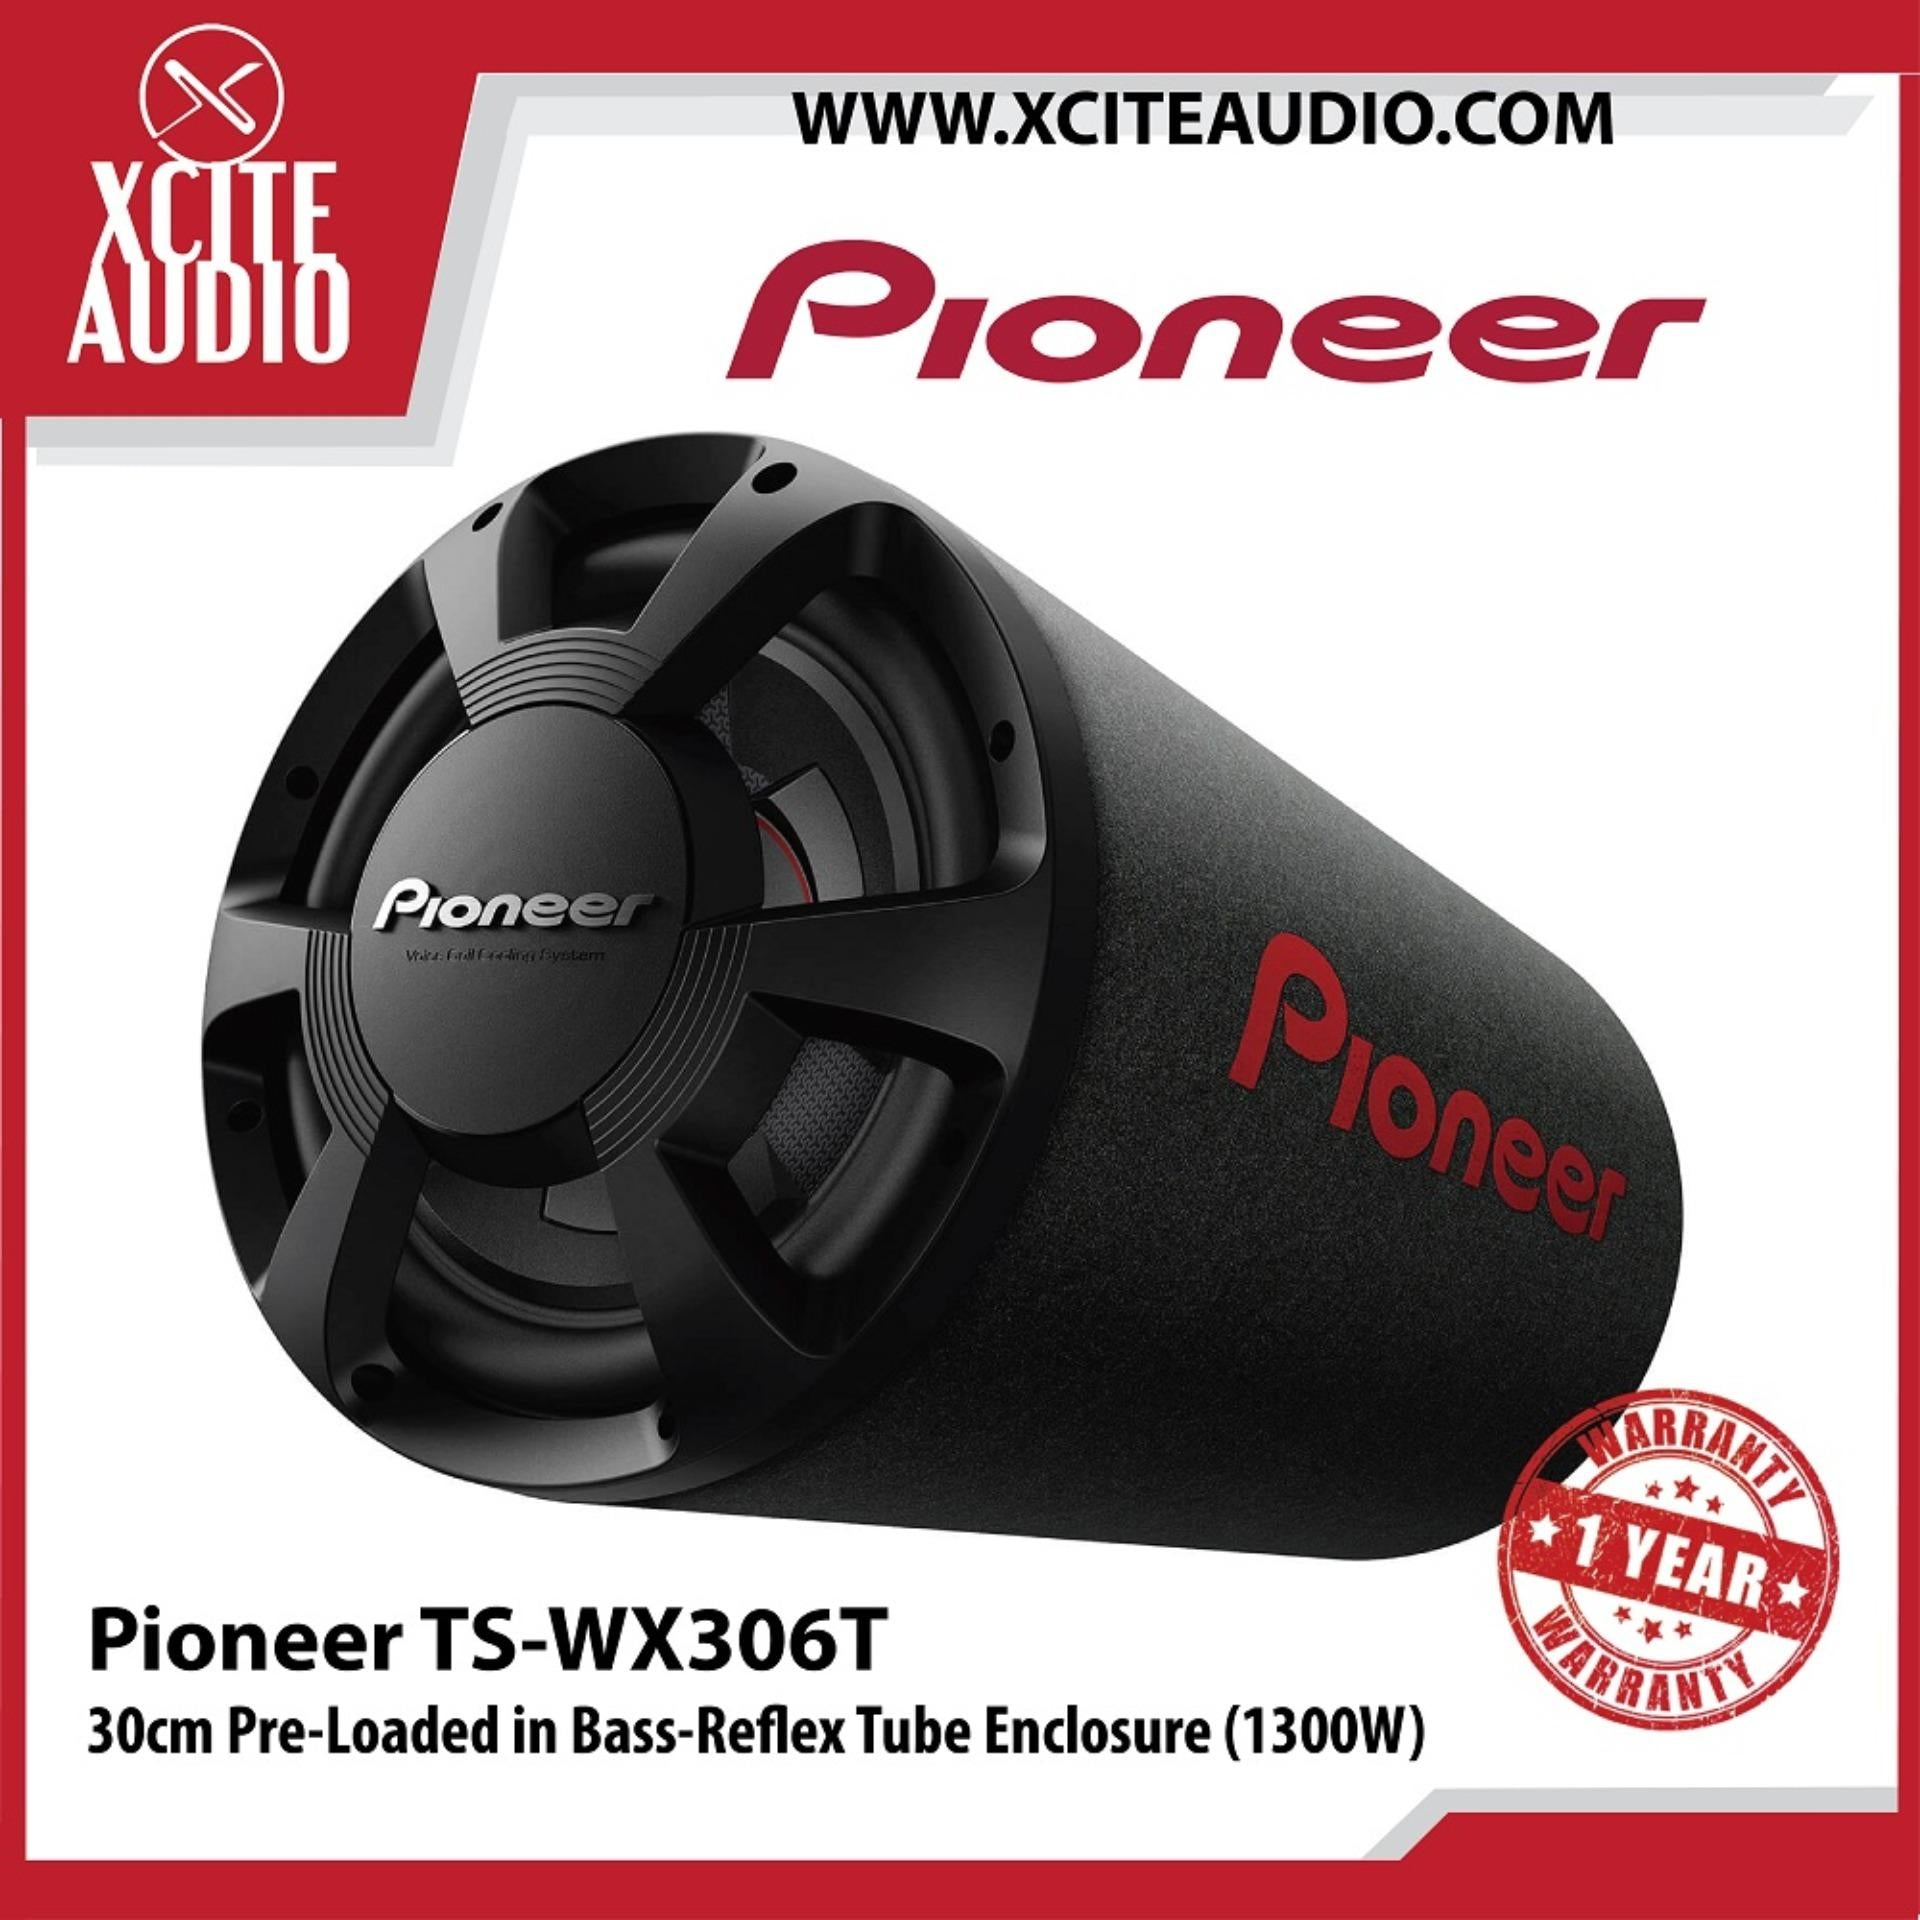 "Pioneer TS-WX306T 12"" 30cm 1300W Pre-Loaded in Bass-Reflex Tube Enclosure Subwoofer"